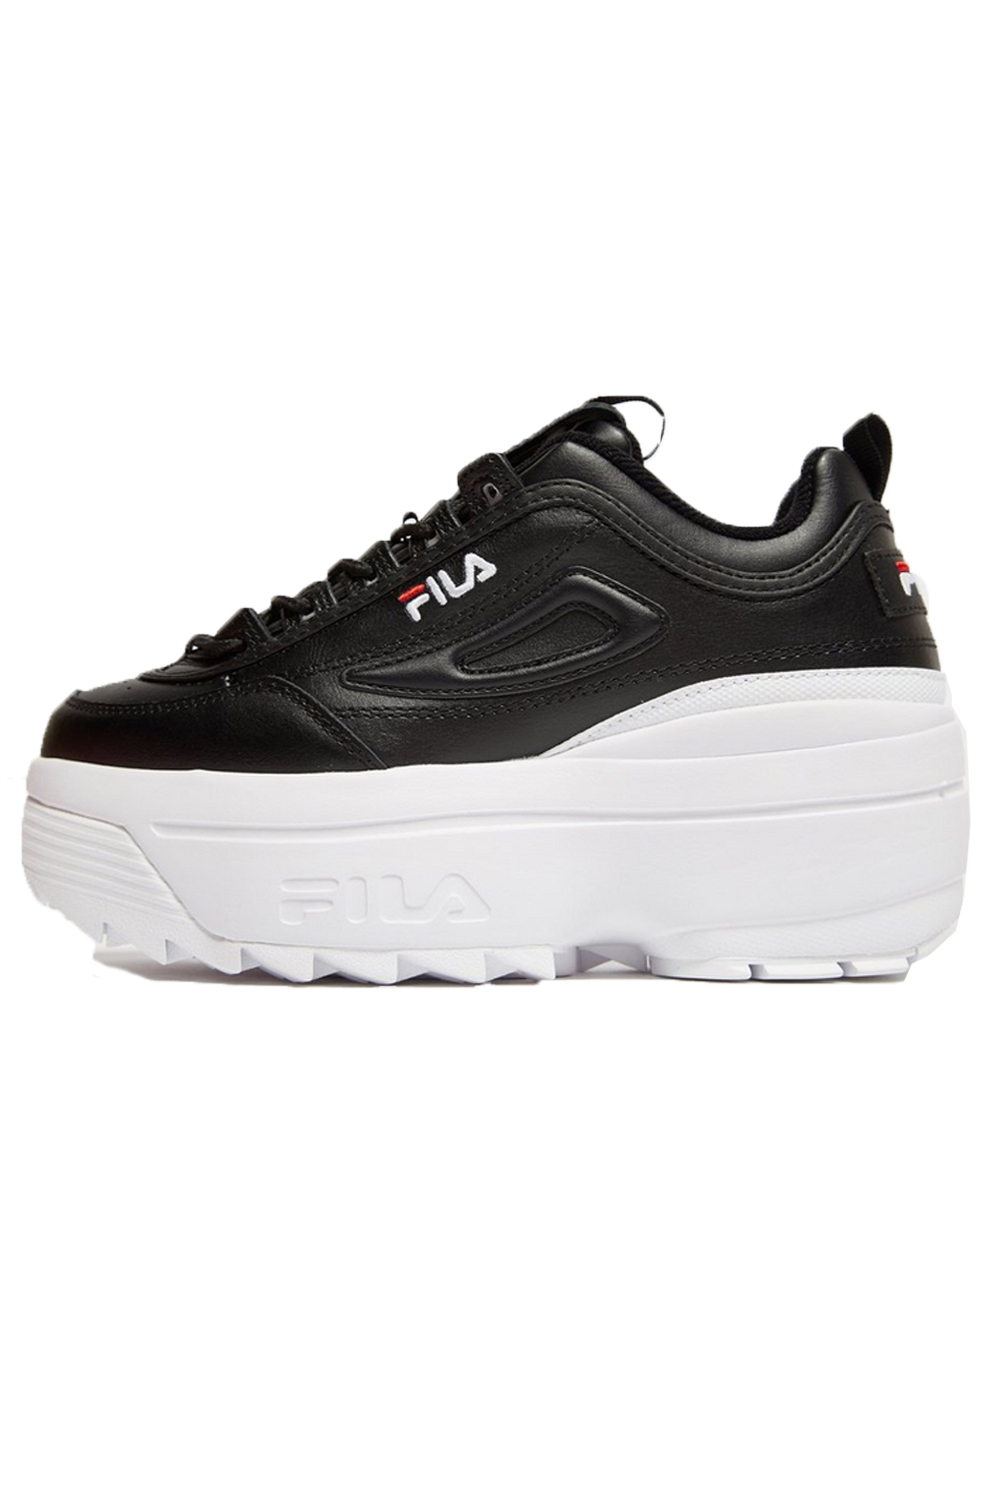 Fila-Disruptor-ll-Wedge-Womens-White-Trainers-Casual-Platform-Chunky-Heel-Shoes thumbnail 9